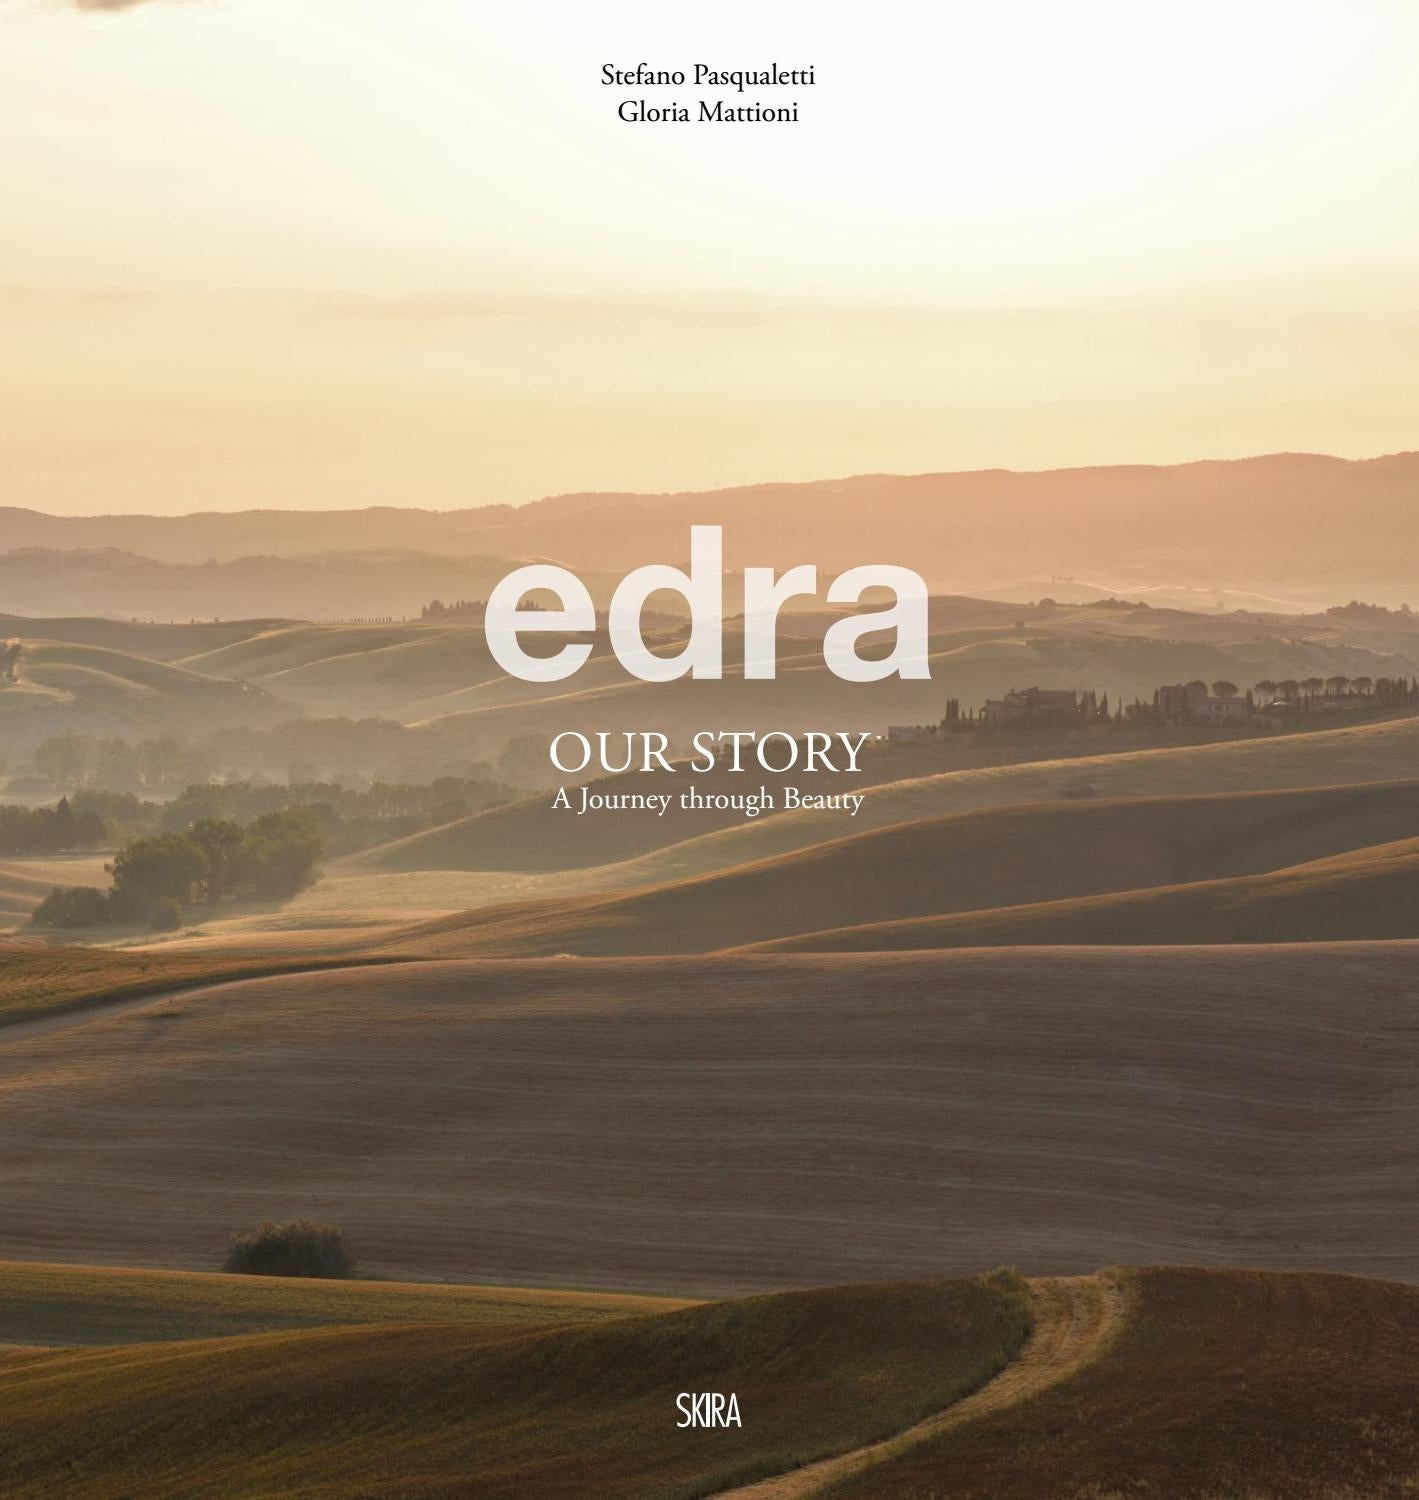 Divano Boa Edra Prezzo Edra Our Story A Journey Through Beauty By Edra Spa Issuu